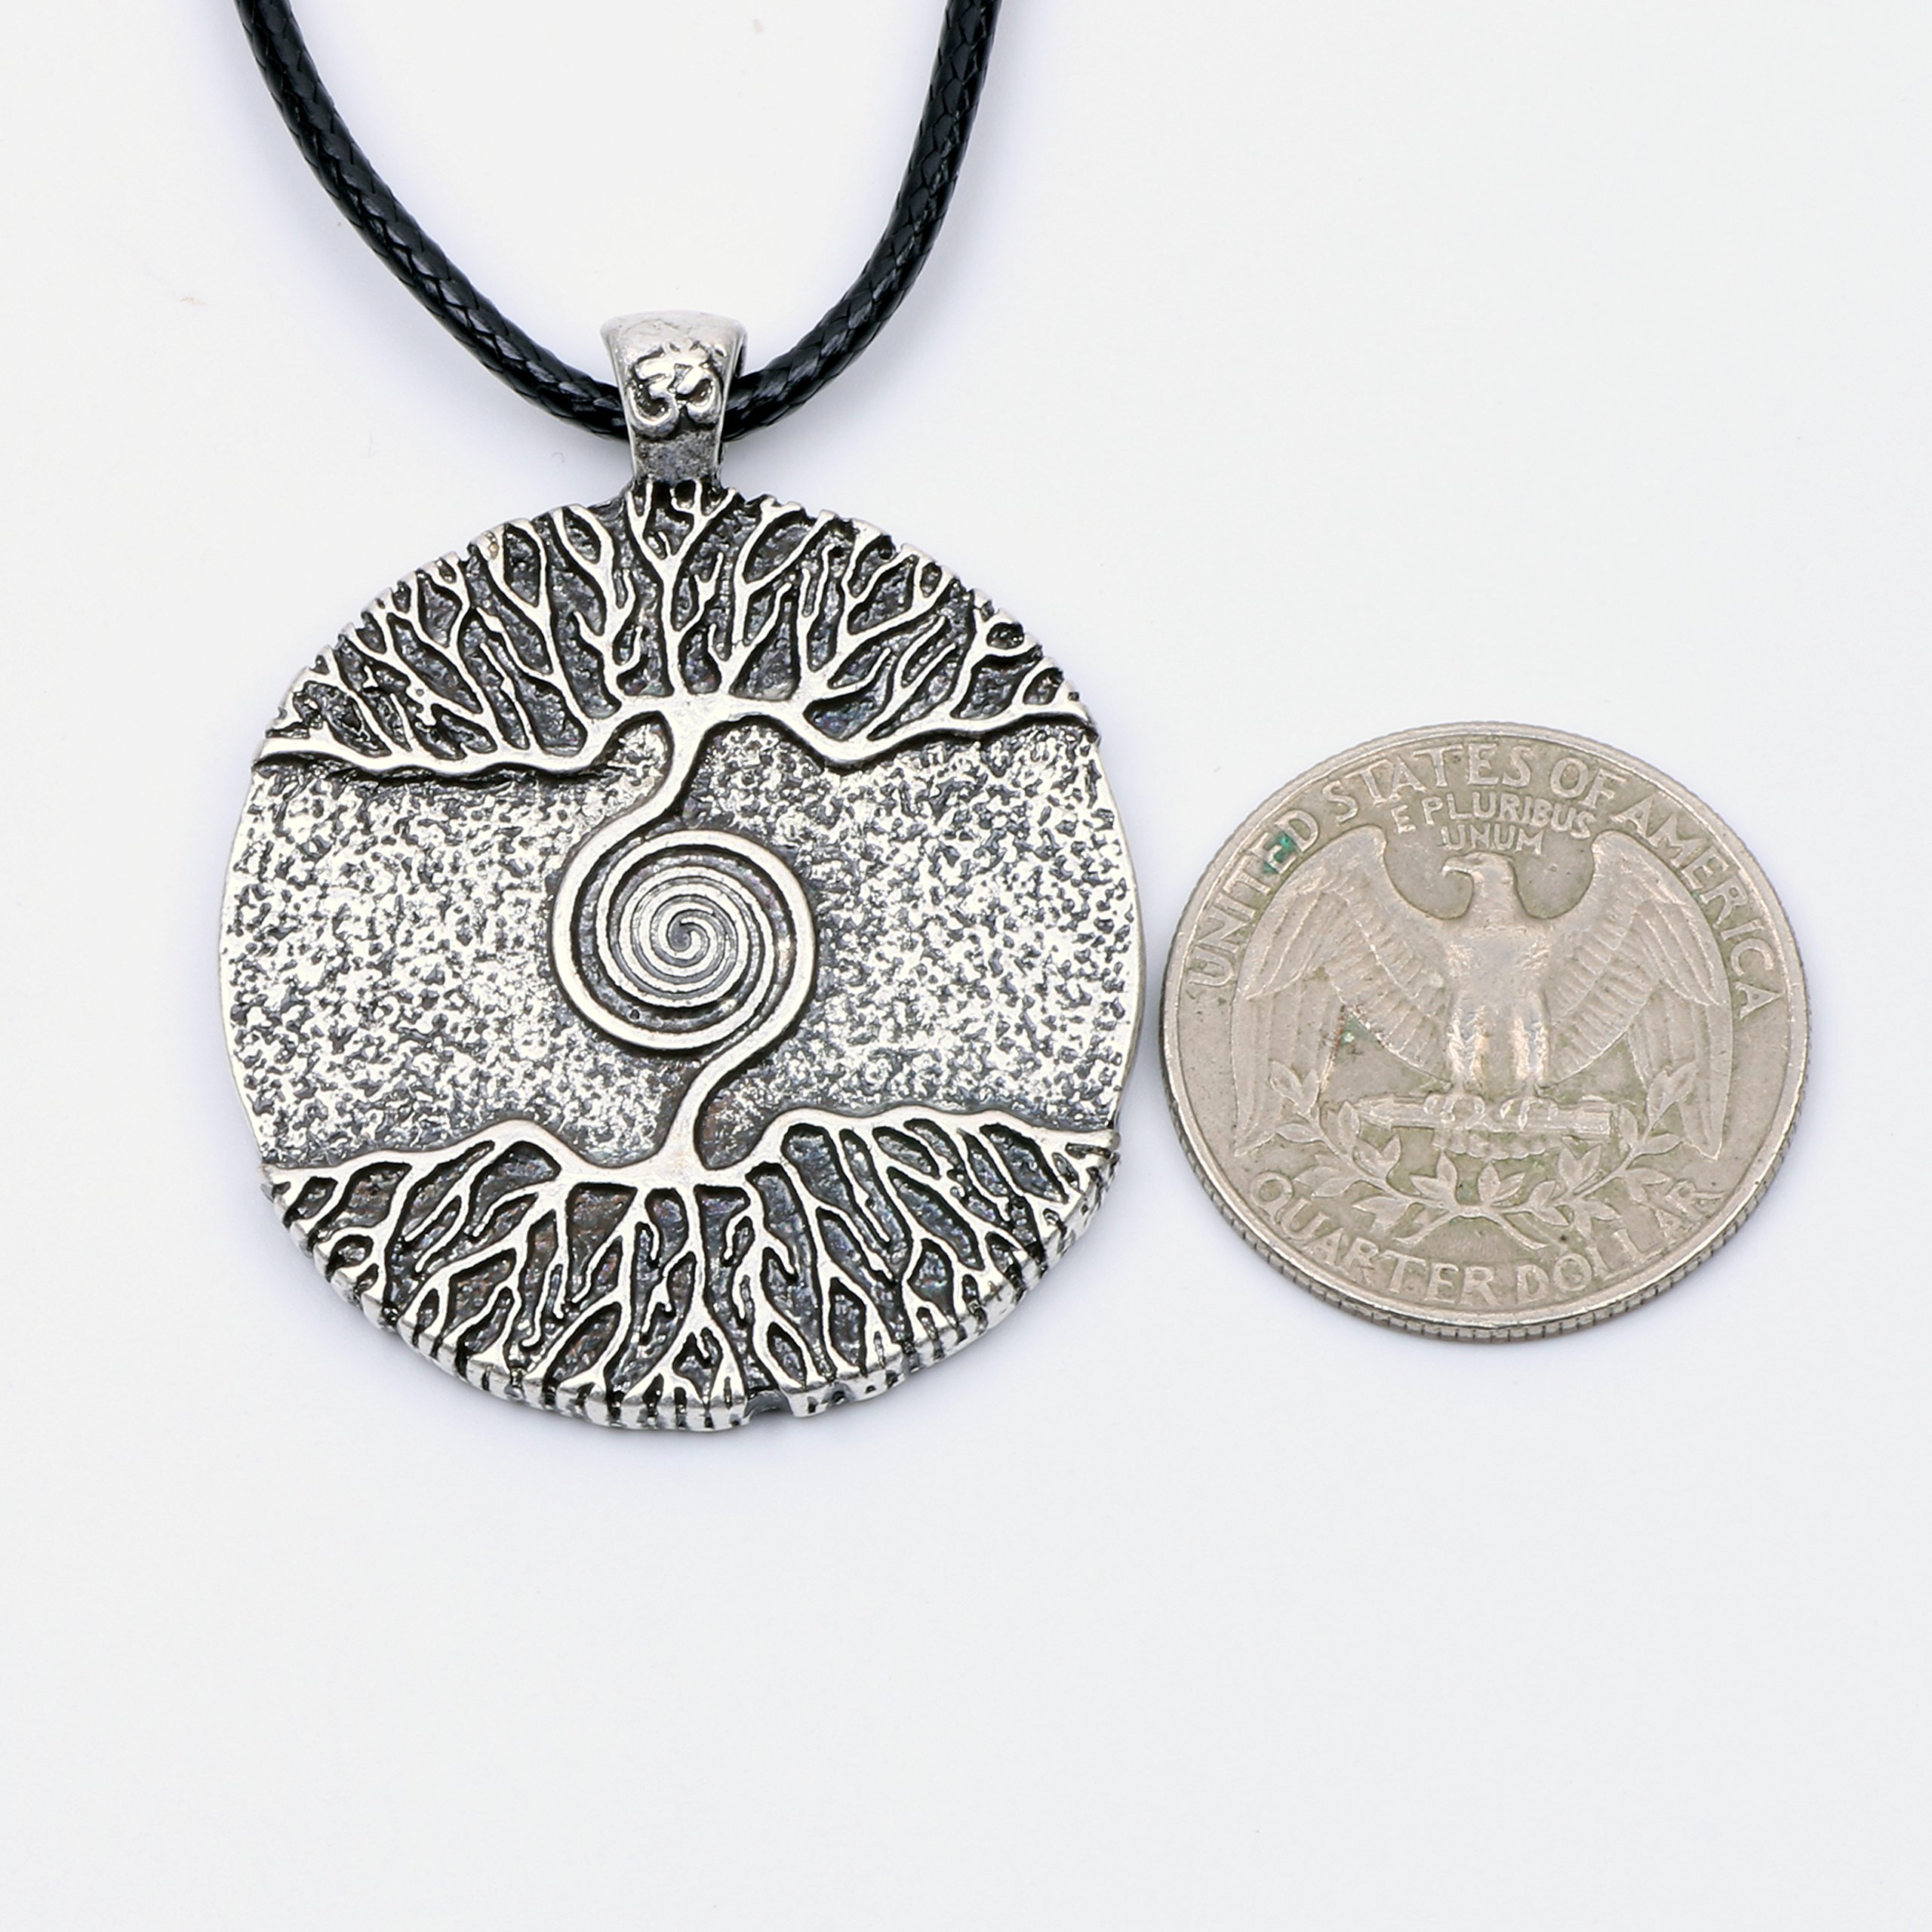 Paw Paw House Yoga Inspired Kybalion Pendant Necklace Amulet Tree of Life Talisma Chi As Above As Below As Within As Without Meditation (4082 Si) (4082) by Paw Paw House (Image #3)